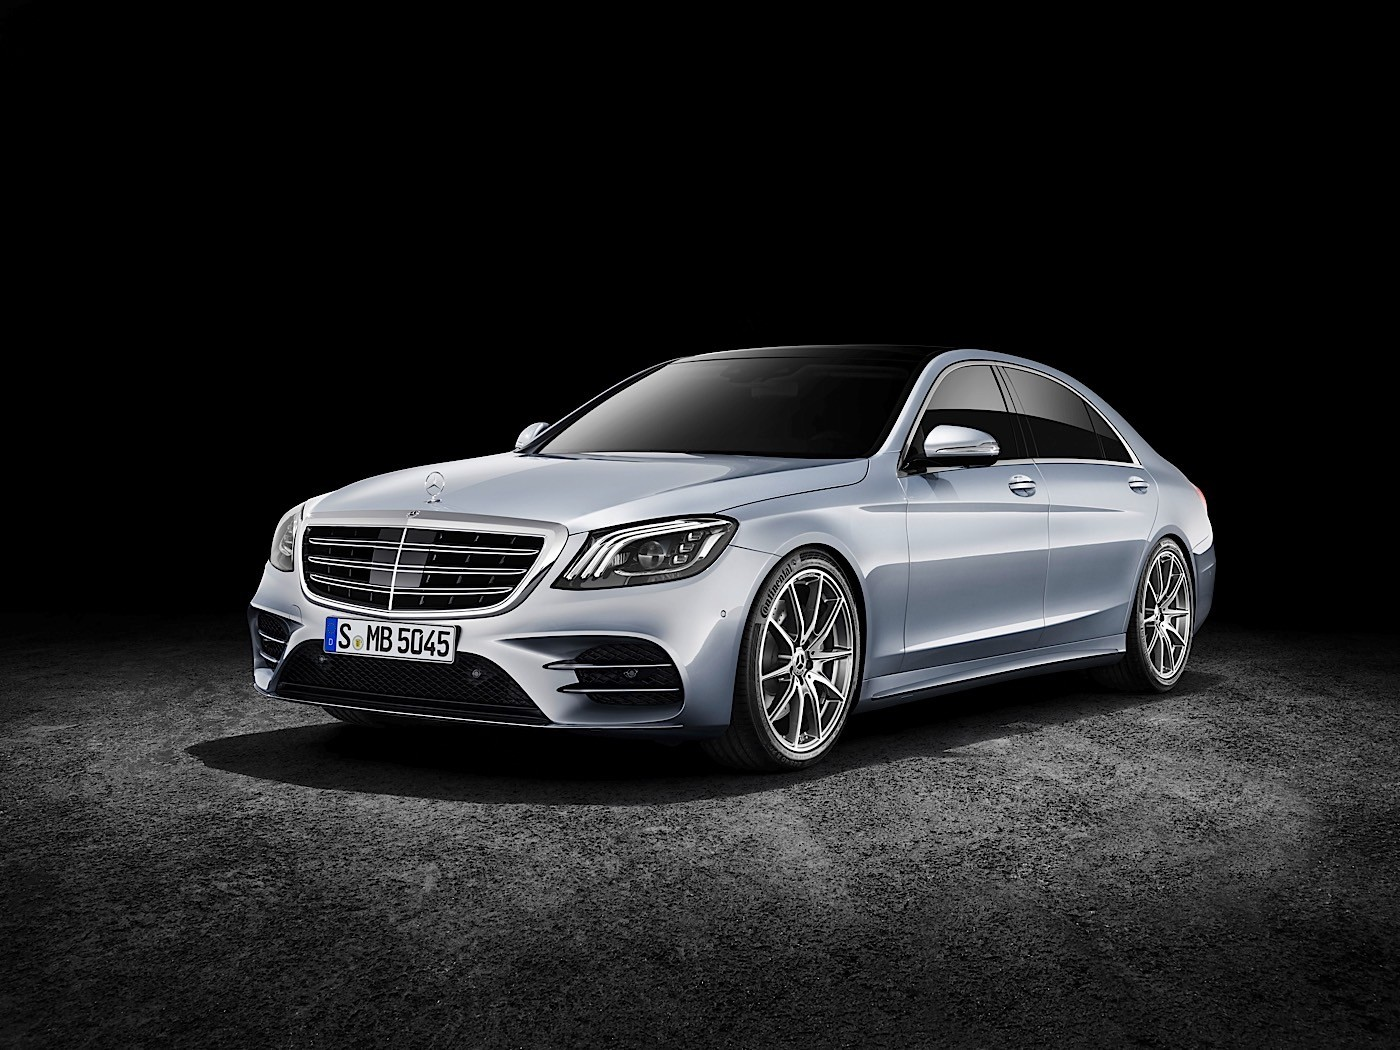 2018 mercedes benz s class w222 facelift brings back the inline six autoevolution. Black Bedroom Furniture Sets. Home Design Ideas